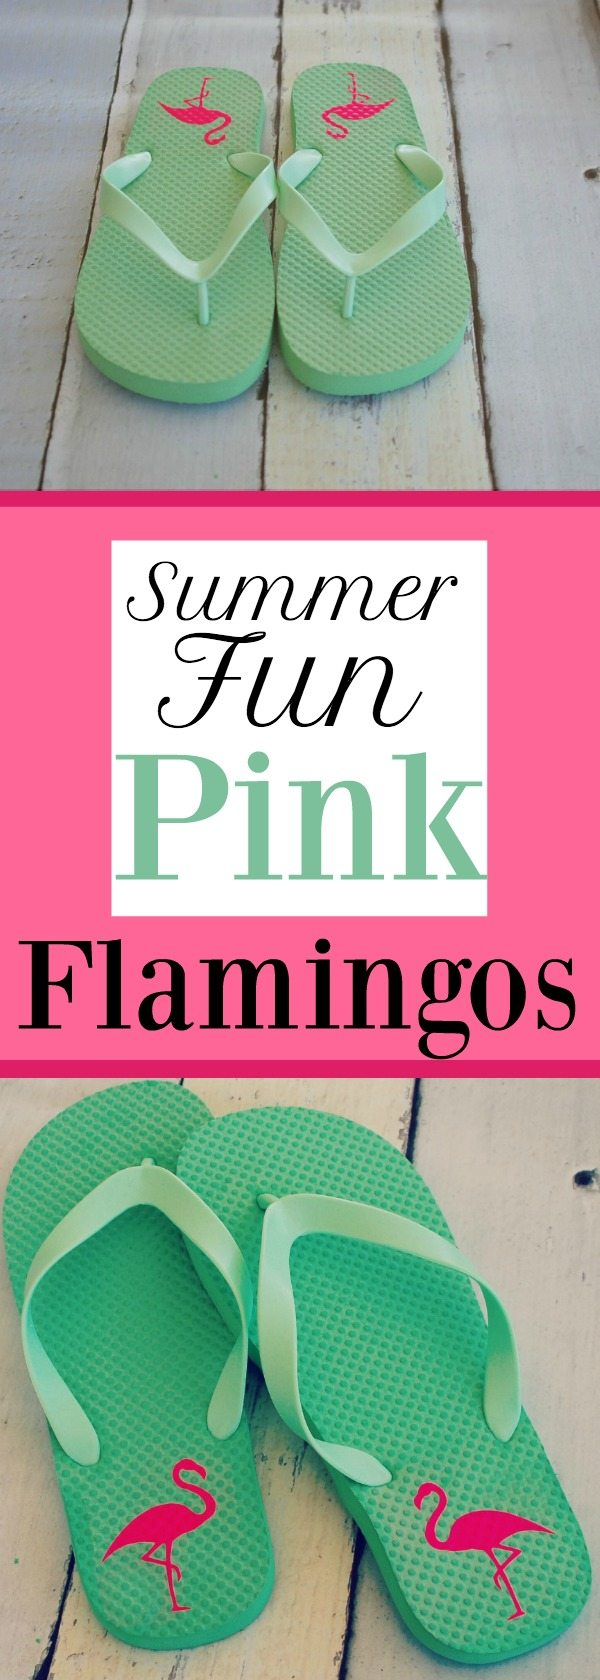 Summer fun flip flops with Pink Flamingos